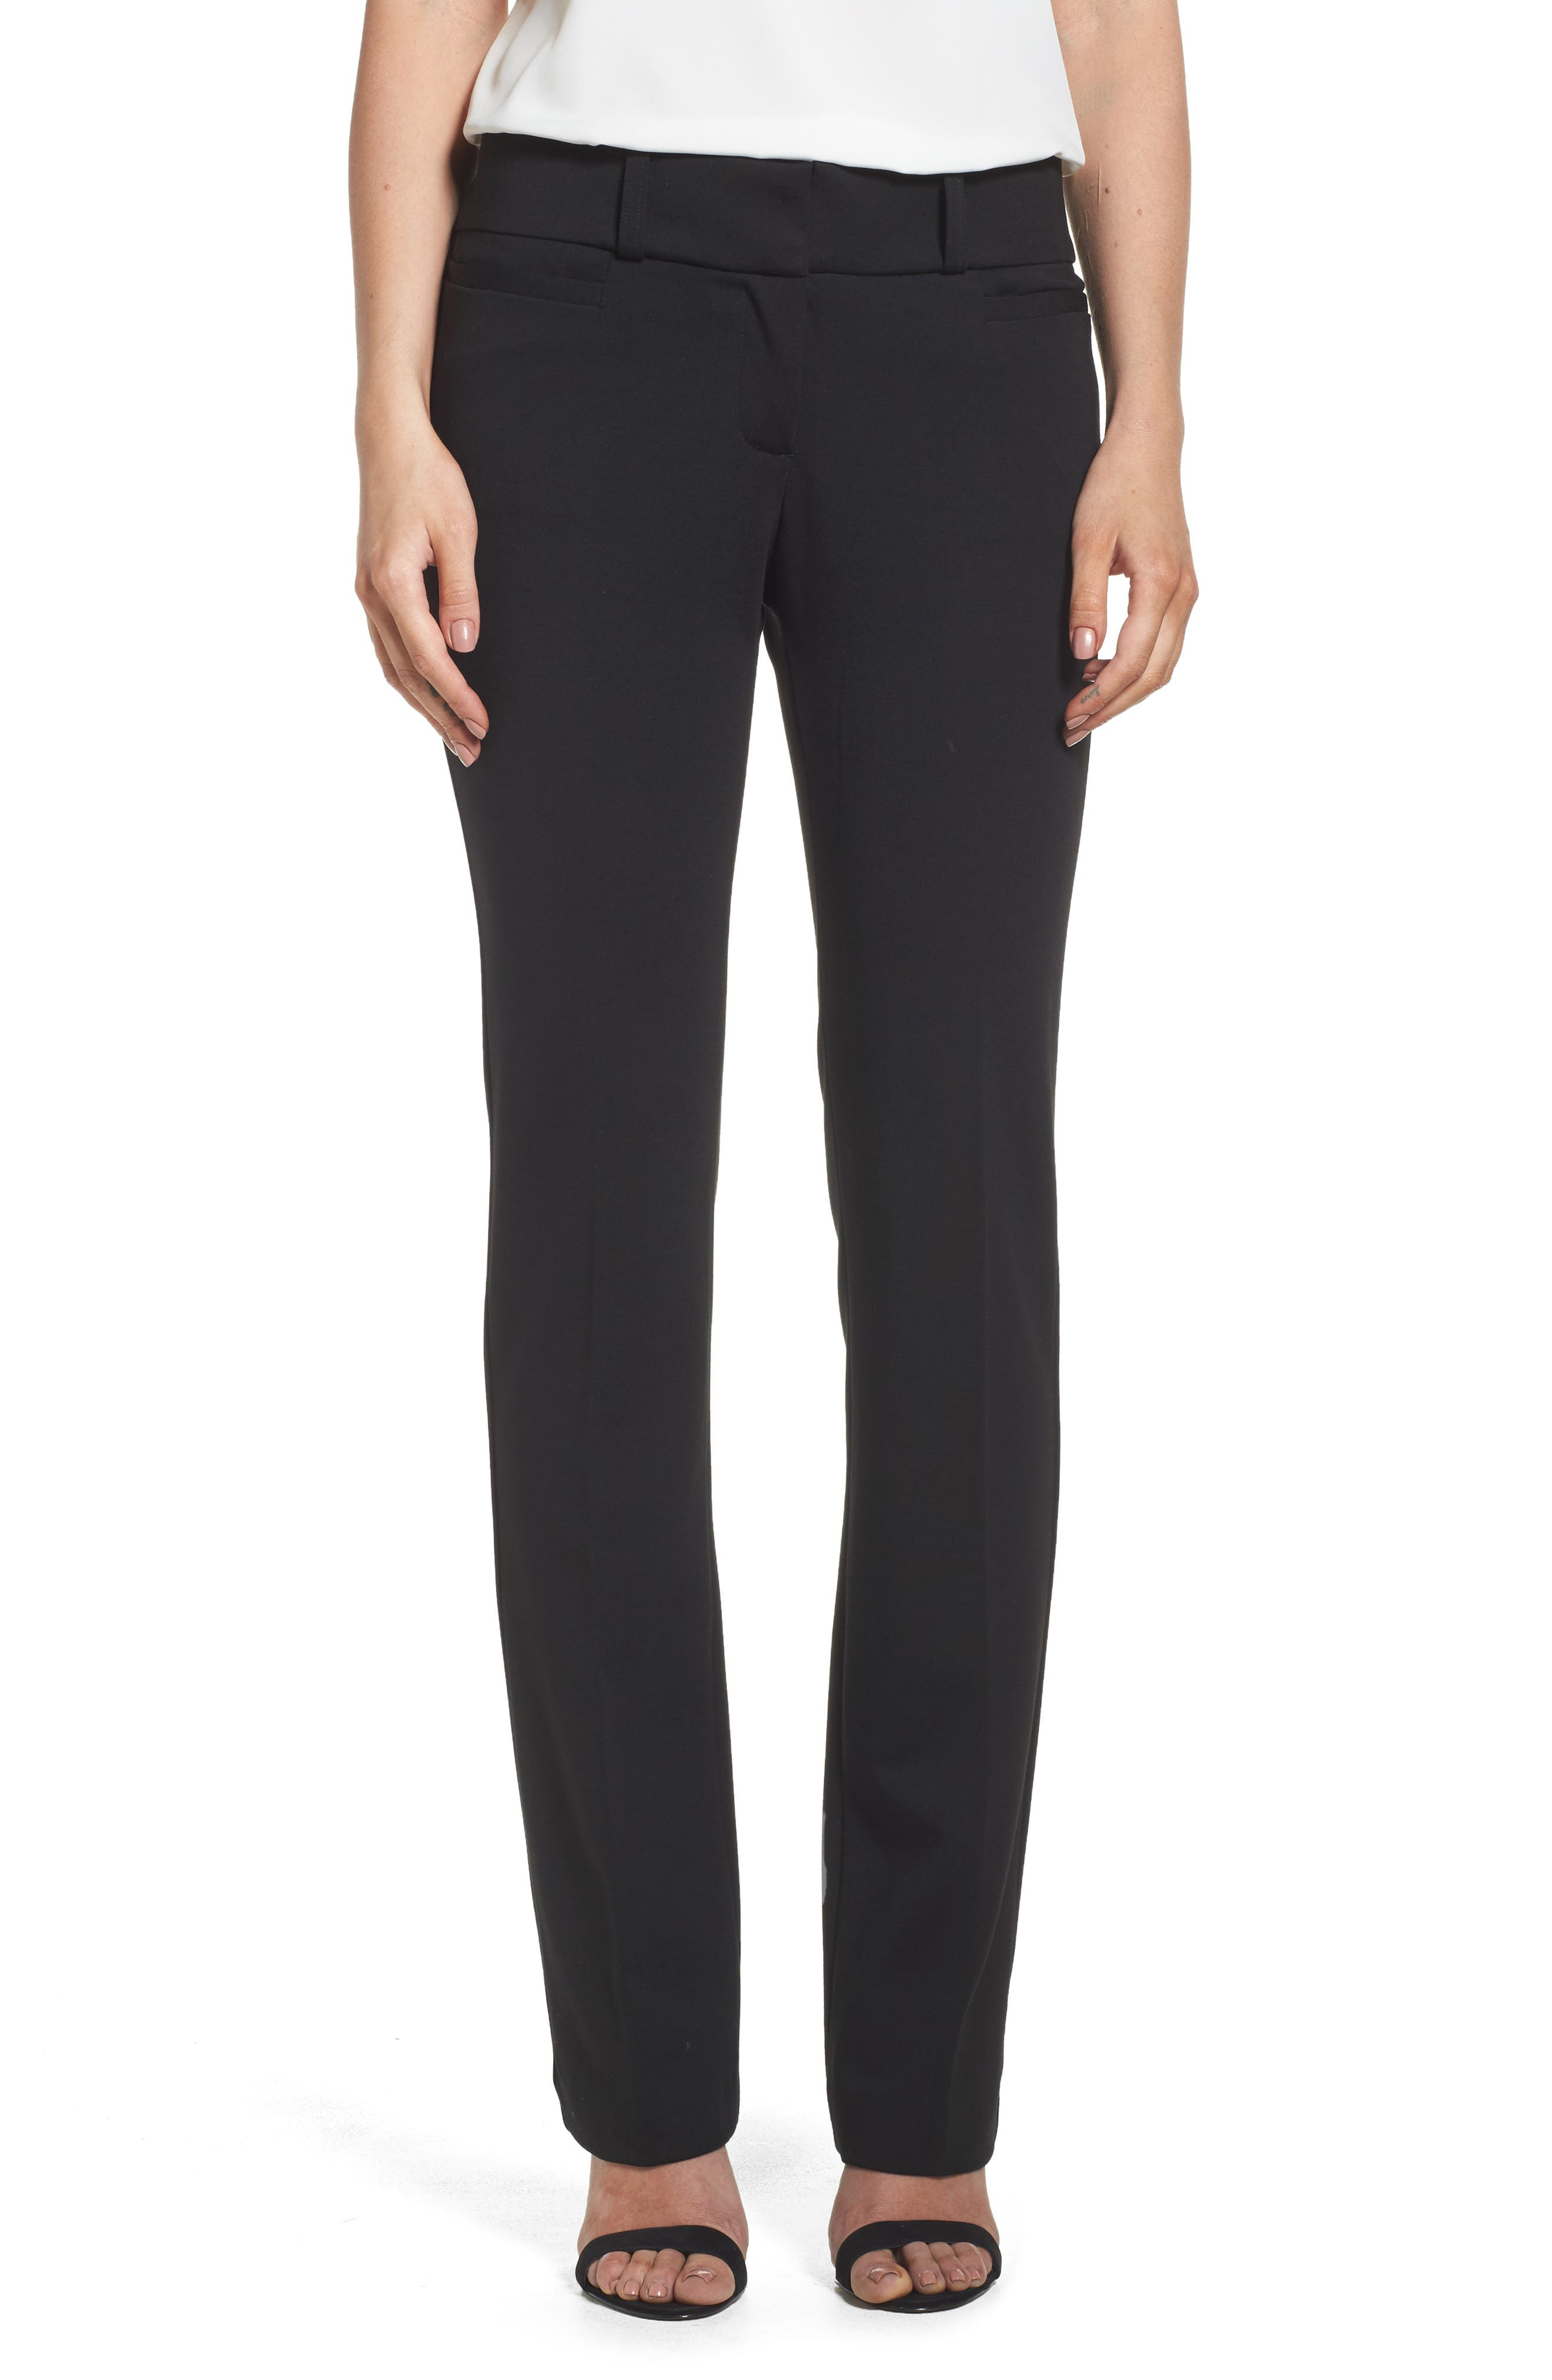 Jane Brown Trousers,                         Main,                         color, 001